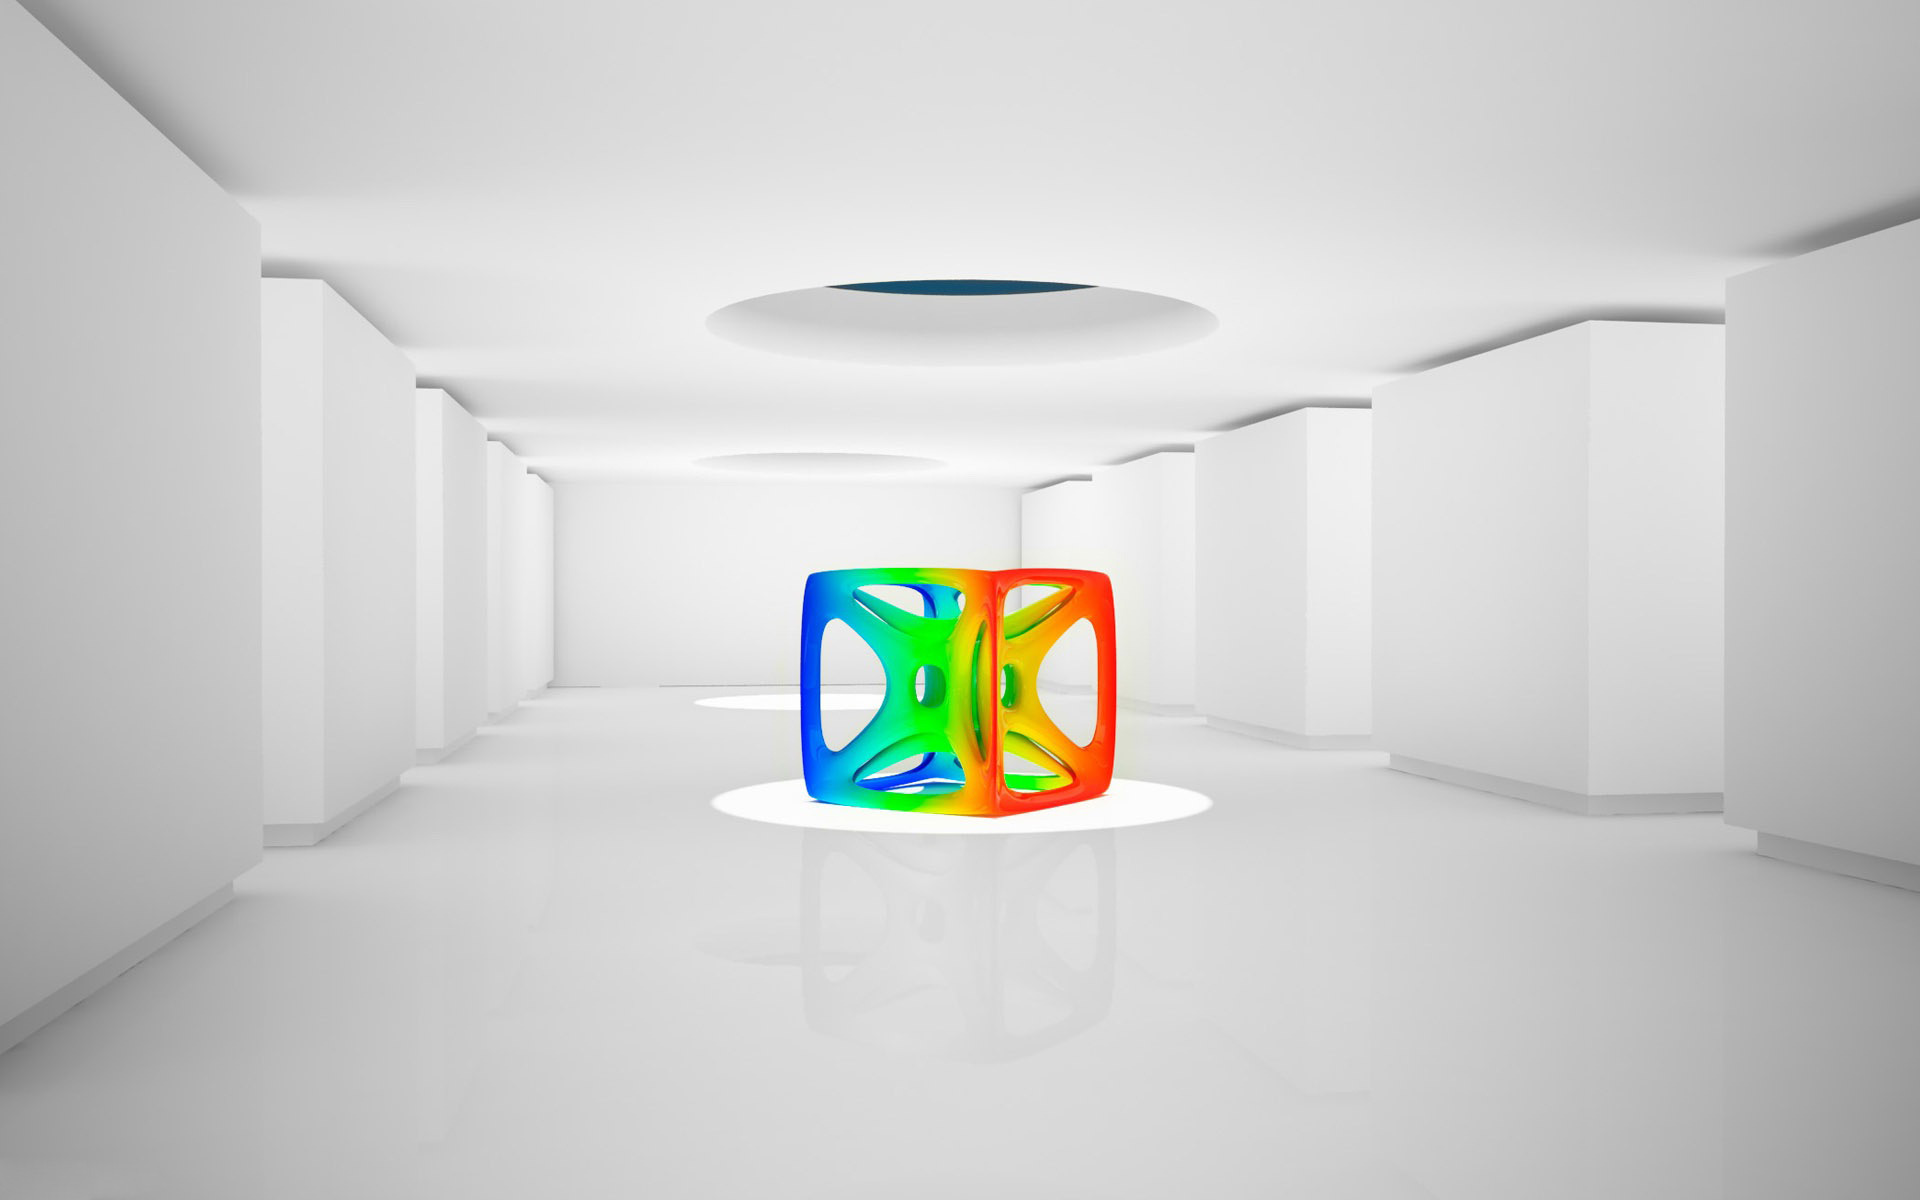 Colorful cube in the middle of white room